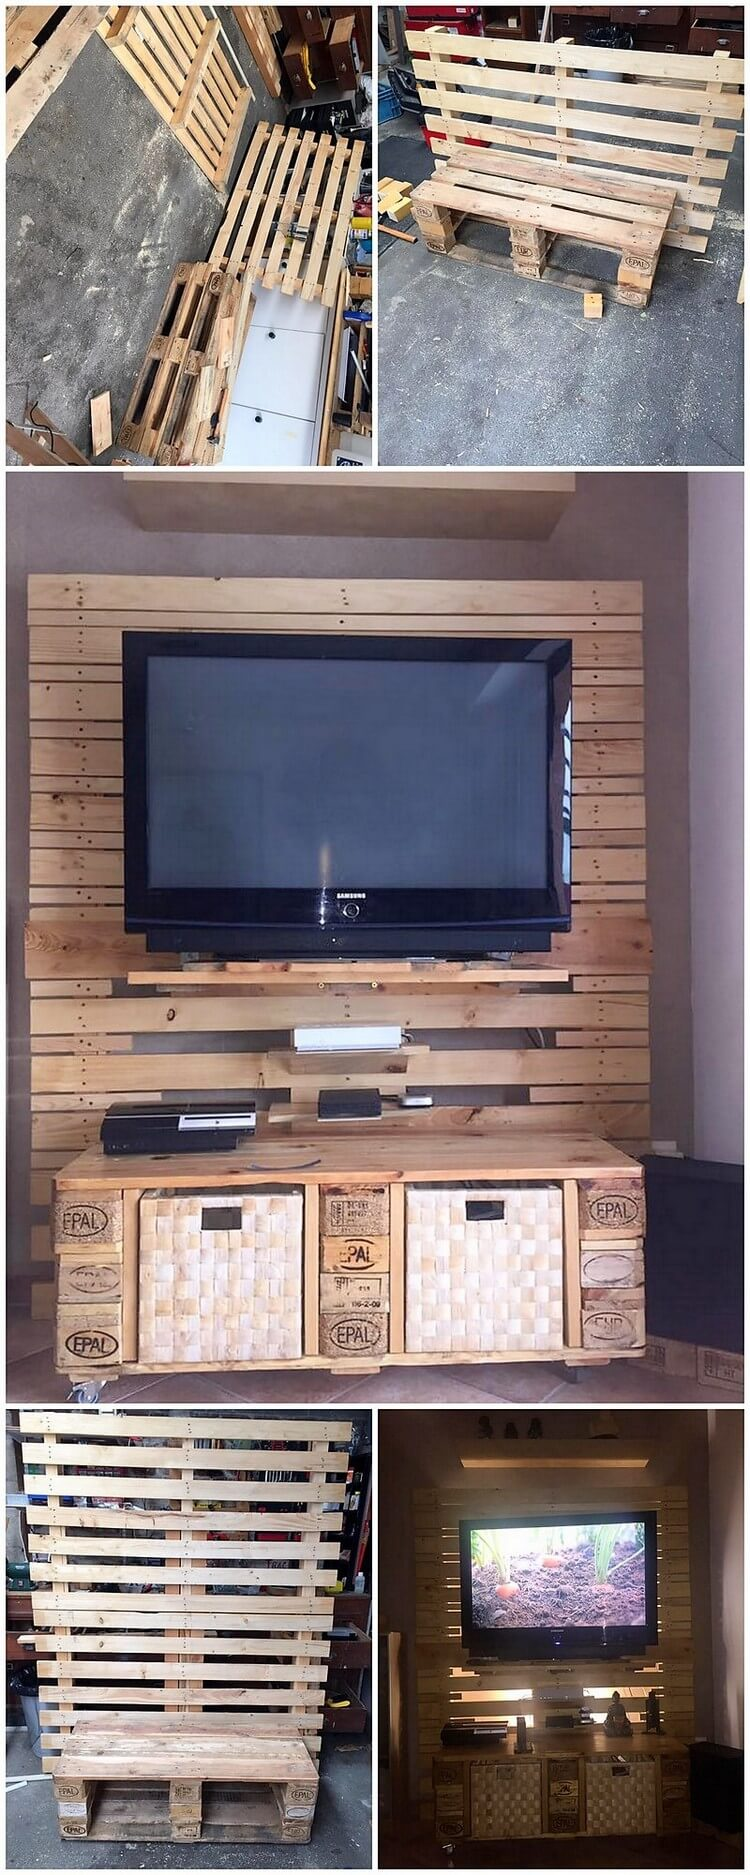 diy pallet entertainment center diy pallet entertainment center step by step plan 678